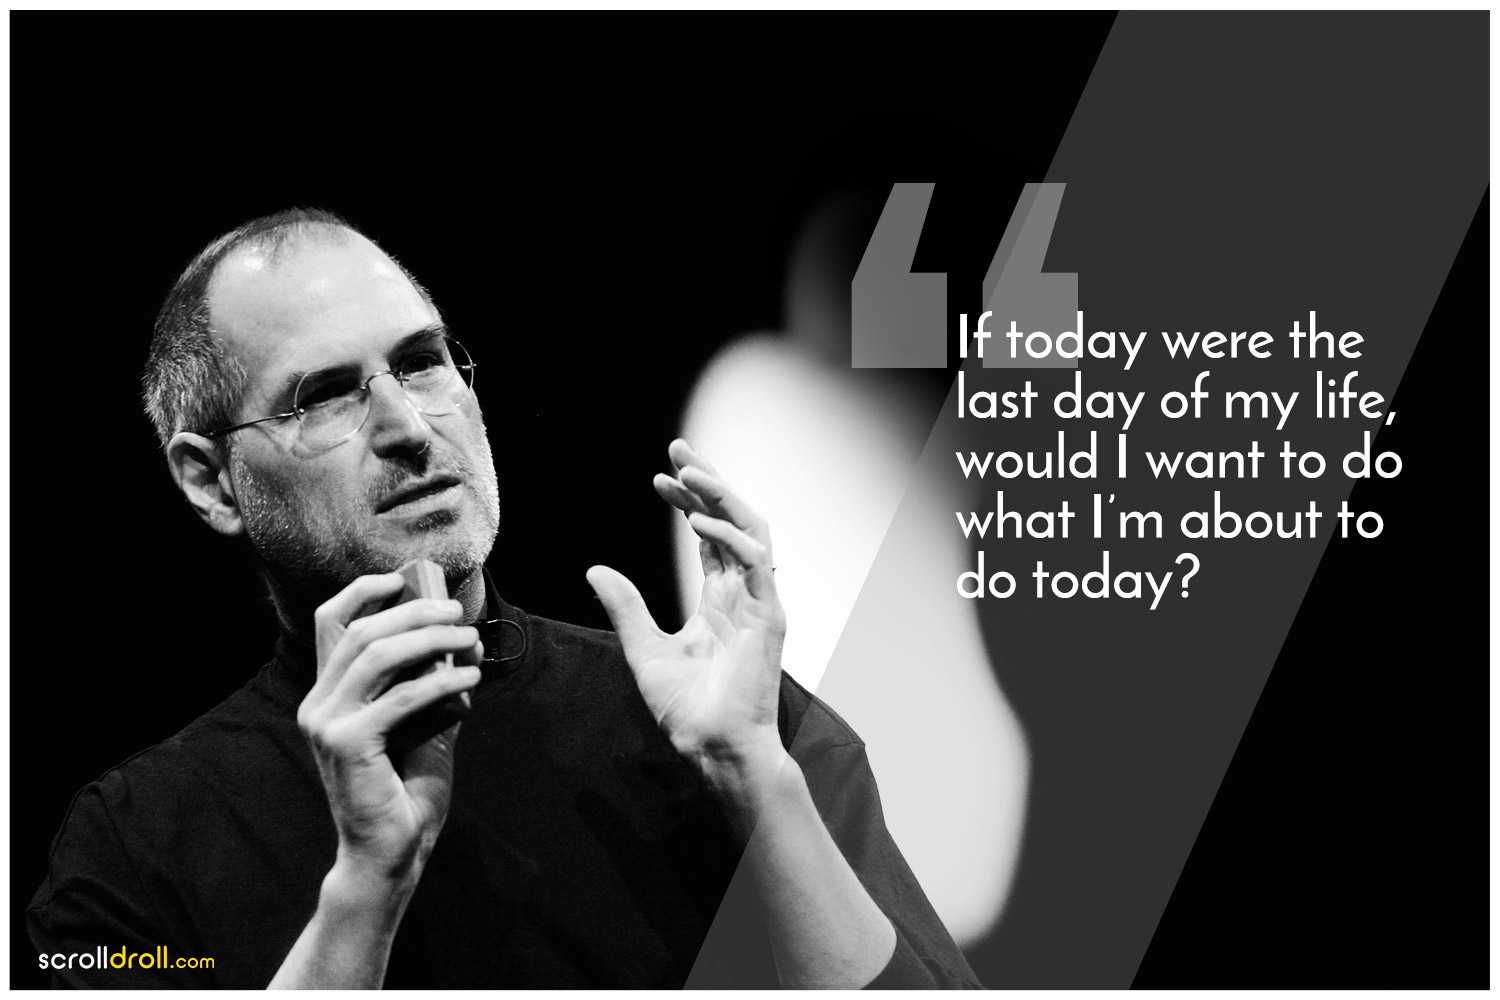 -Steve jobs Quotes-If today were the last day of my life, would i want to do what i'm about to do today?